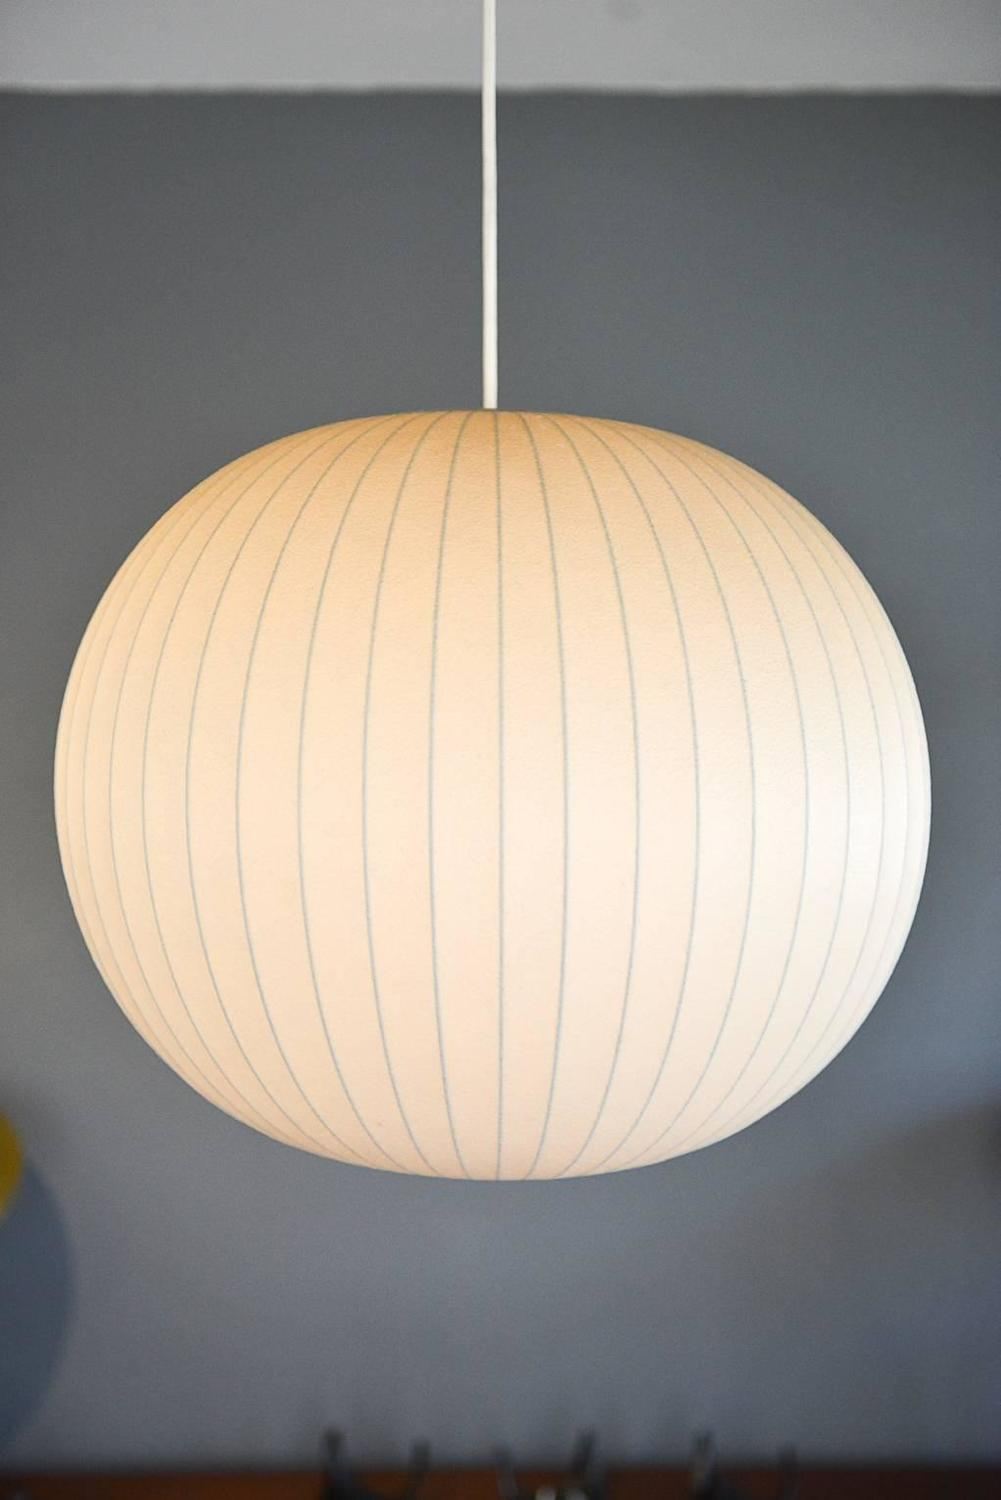 luxury interior saucer manufactured modern lamp george lamps nelson home fiberglass pics of bubble shaped awesome